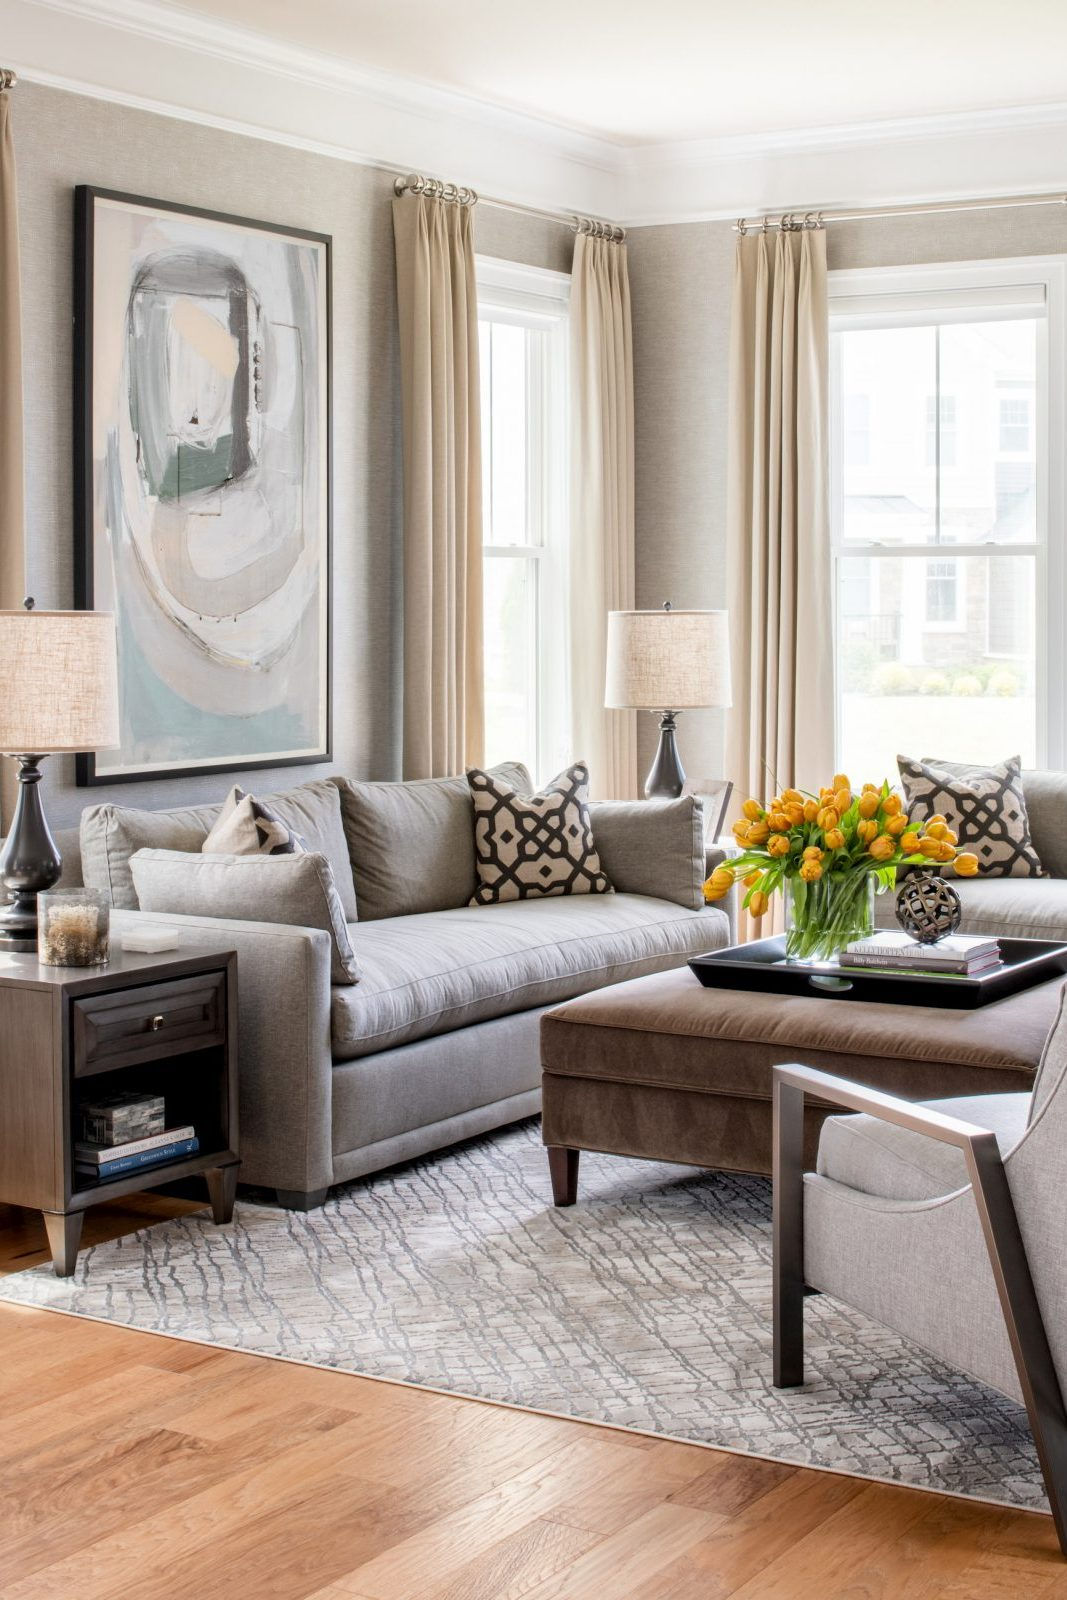 Contemporary living room in shades of grey and pale gold. Contemporary art and gold tulips